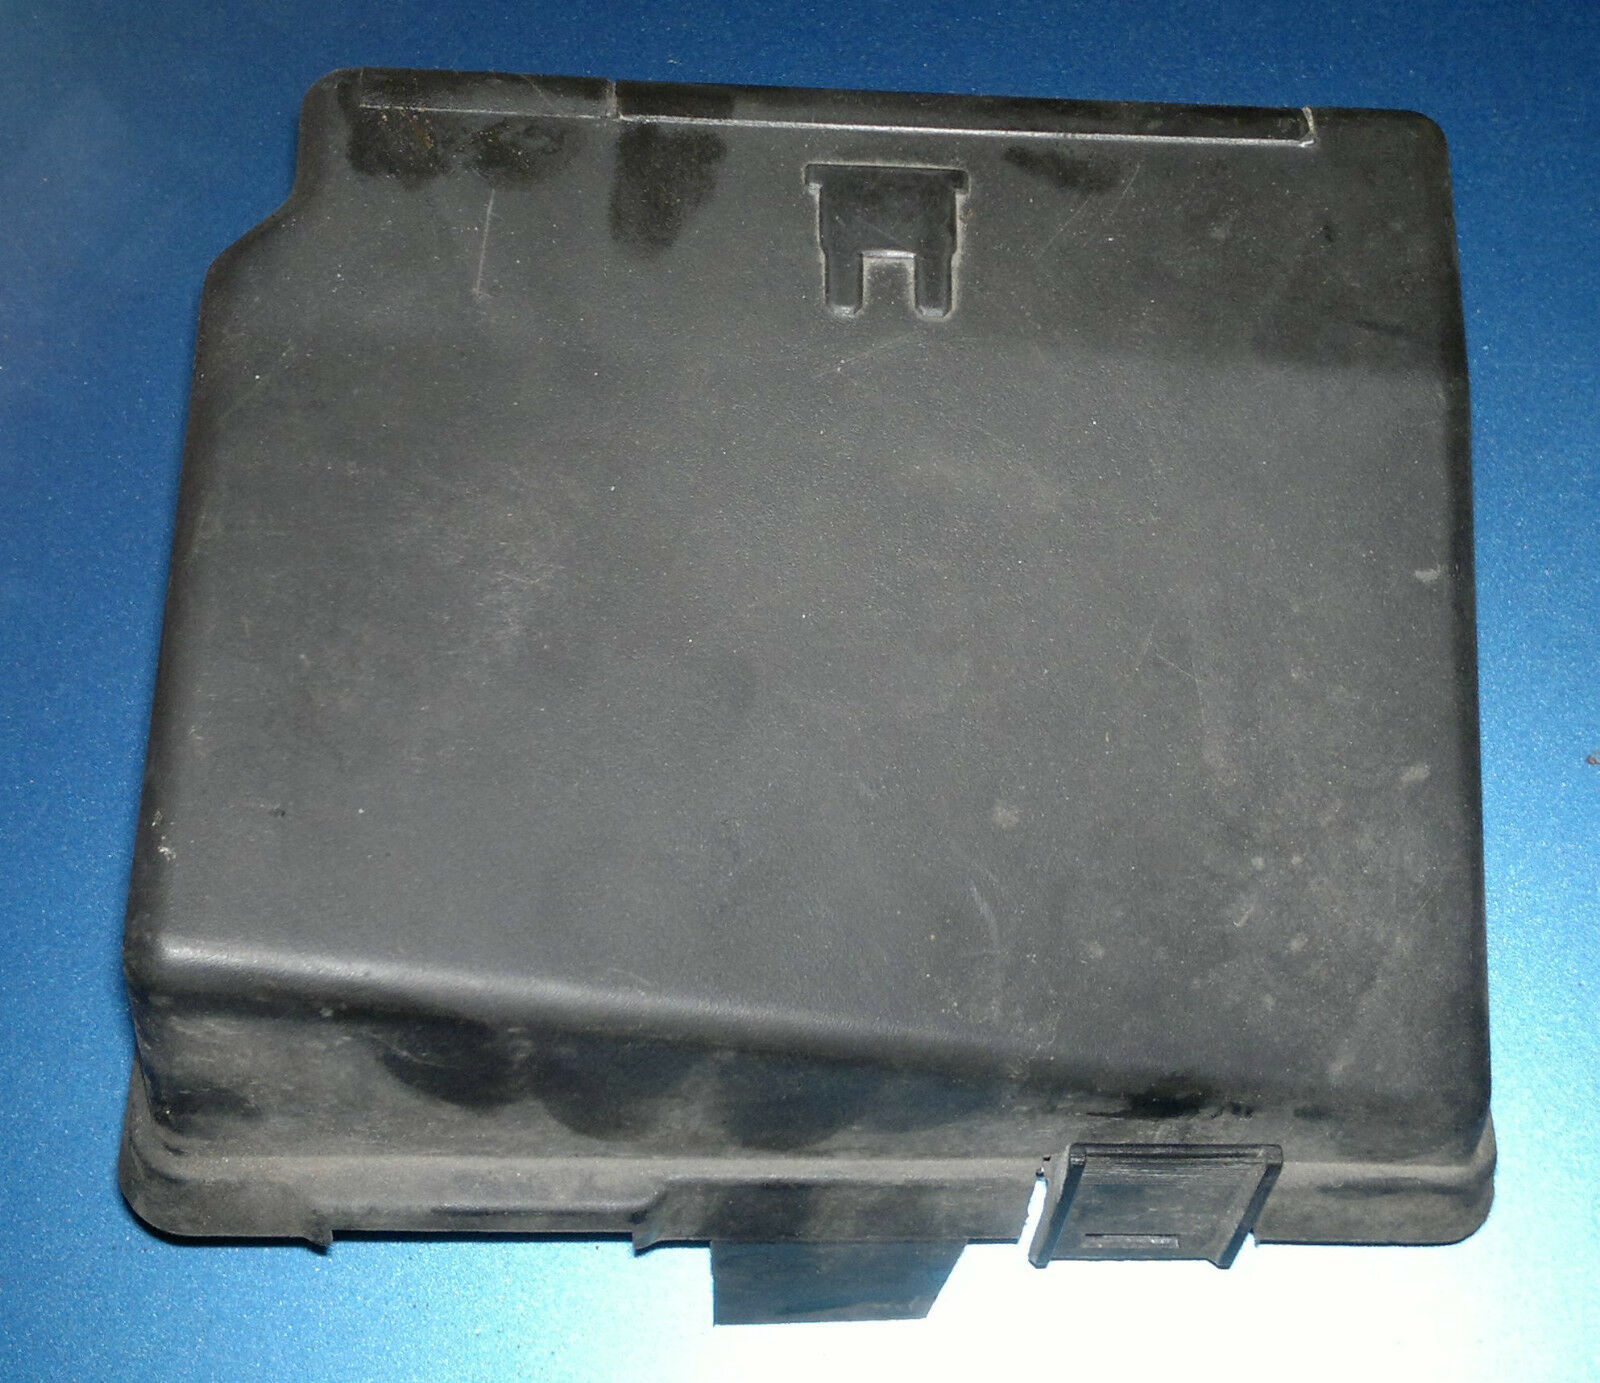 Peugeot 206 04 Fuse Box Electrical Wiring Diagrams Open Cover Lid 1998 06 All Models Part Number Subaru Impreza